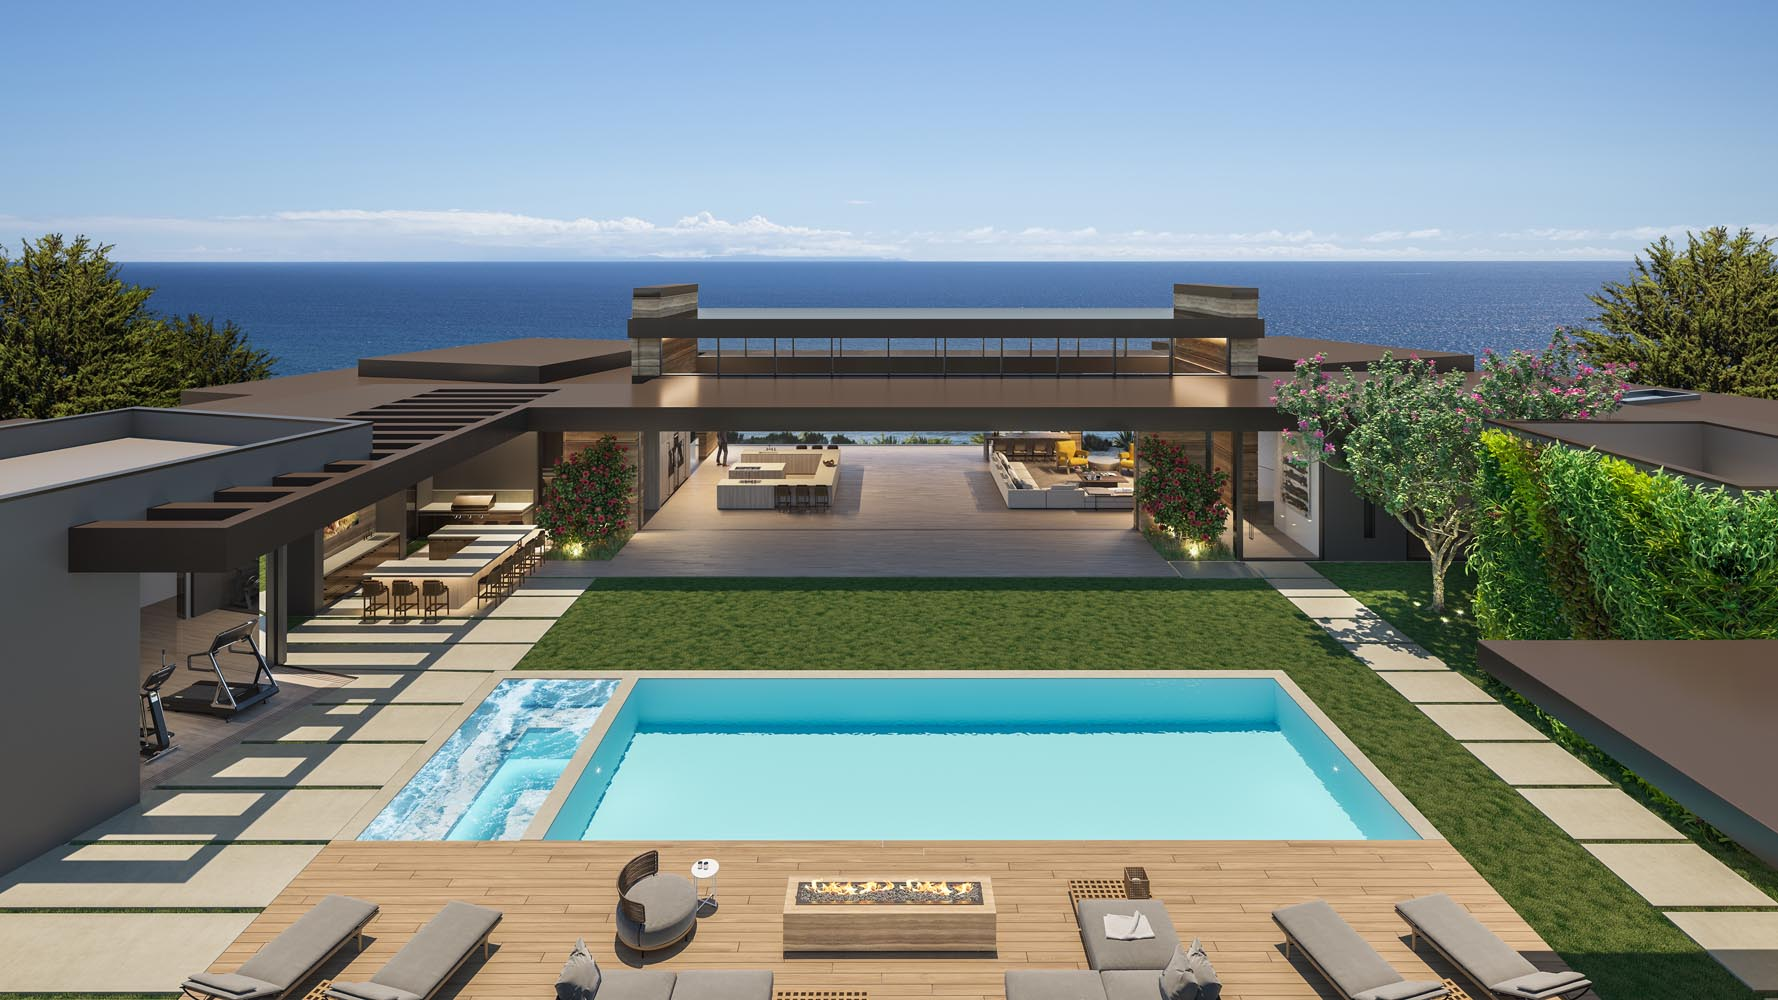 Lot 13 Marisol Malibu Aerial View